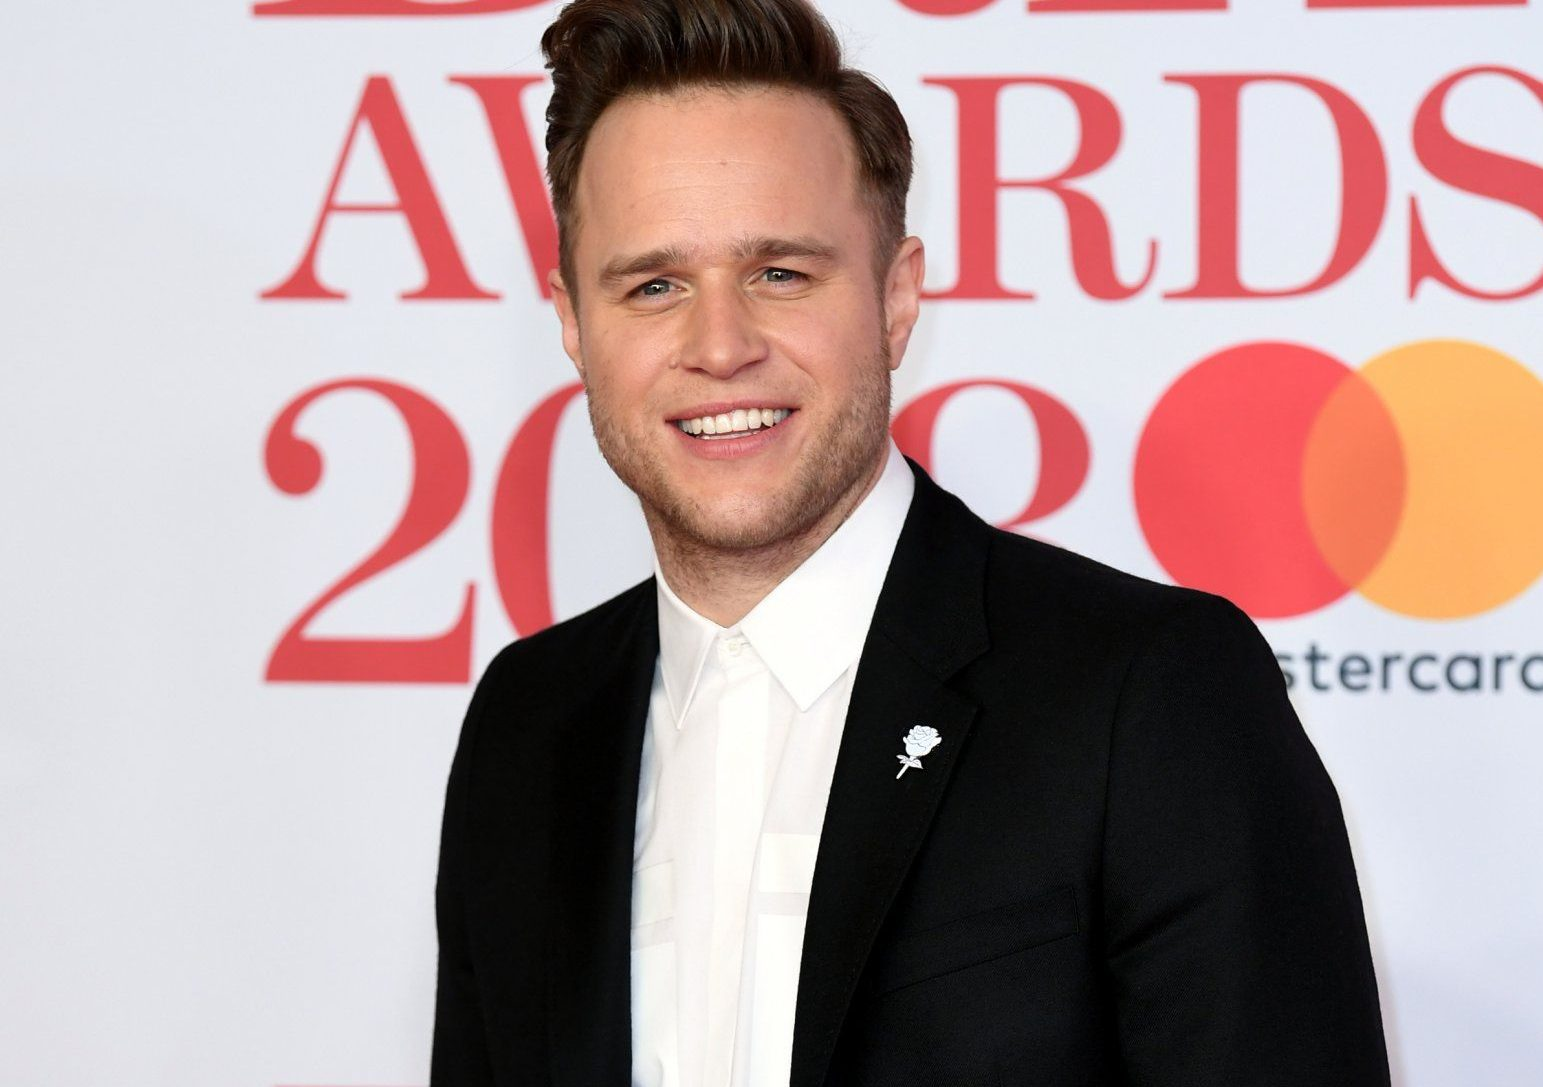 Olly murs at Brits